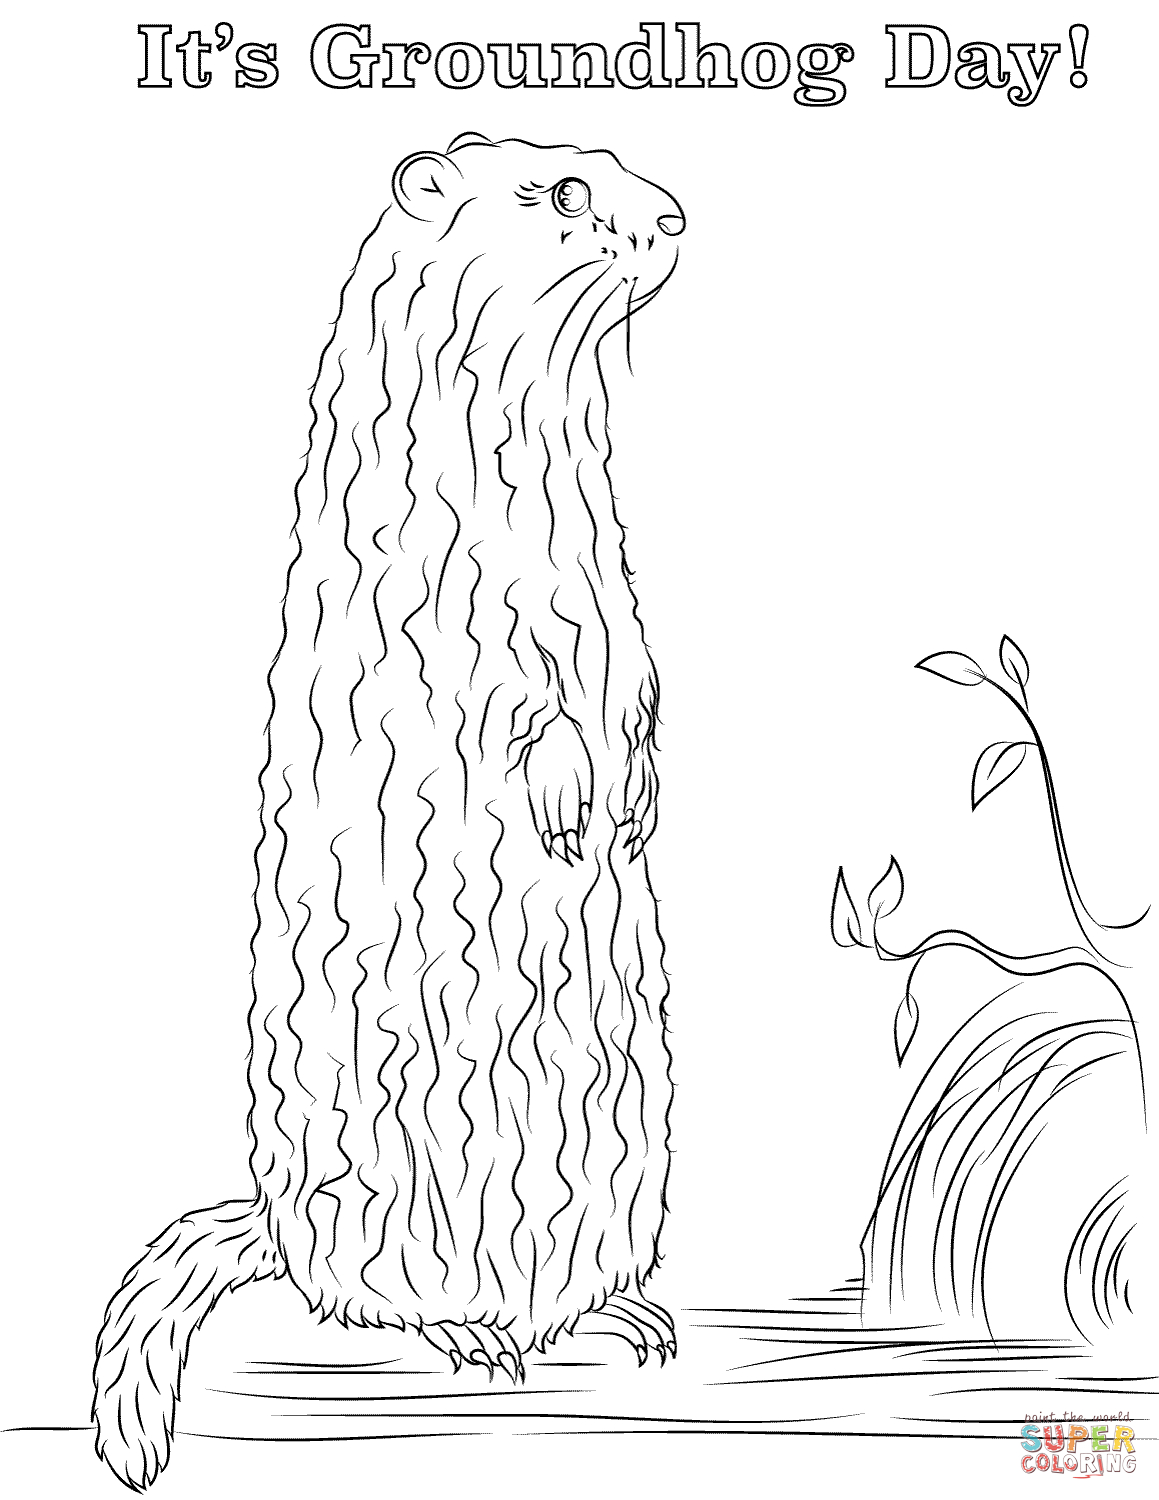 It's Groundhog Day! Coloring Page | Free Printable Coloring Pages - Groundhog Day Coloring Pages Free Printable